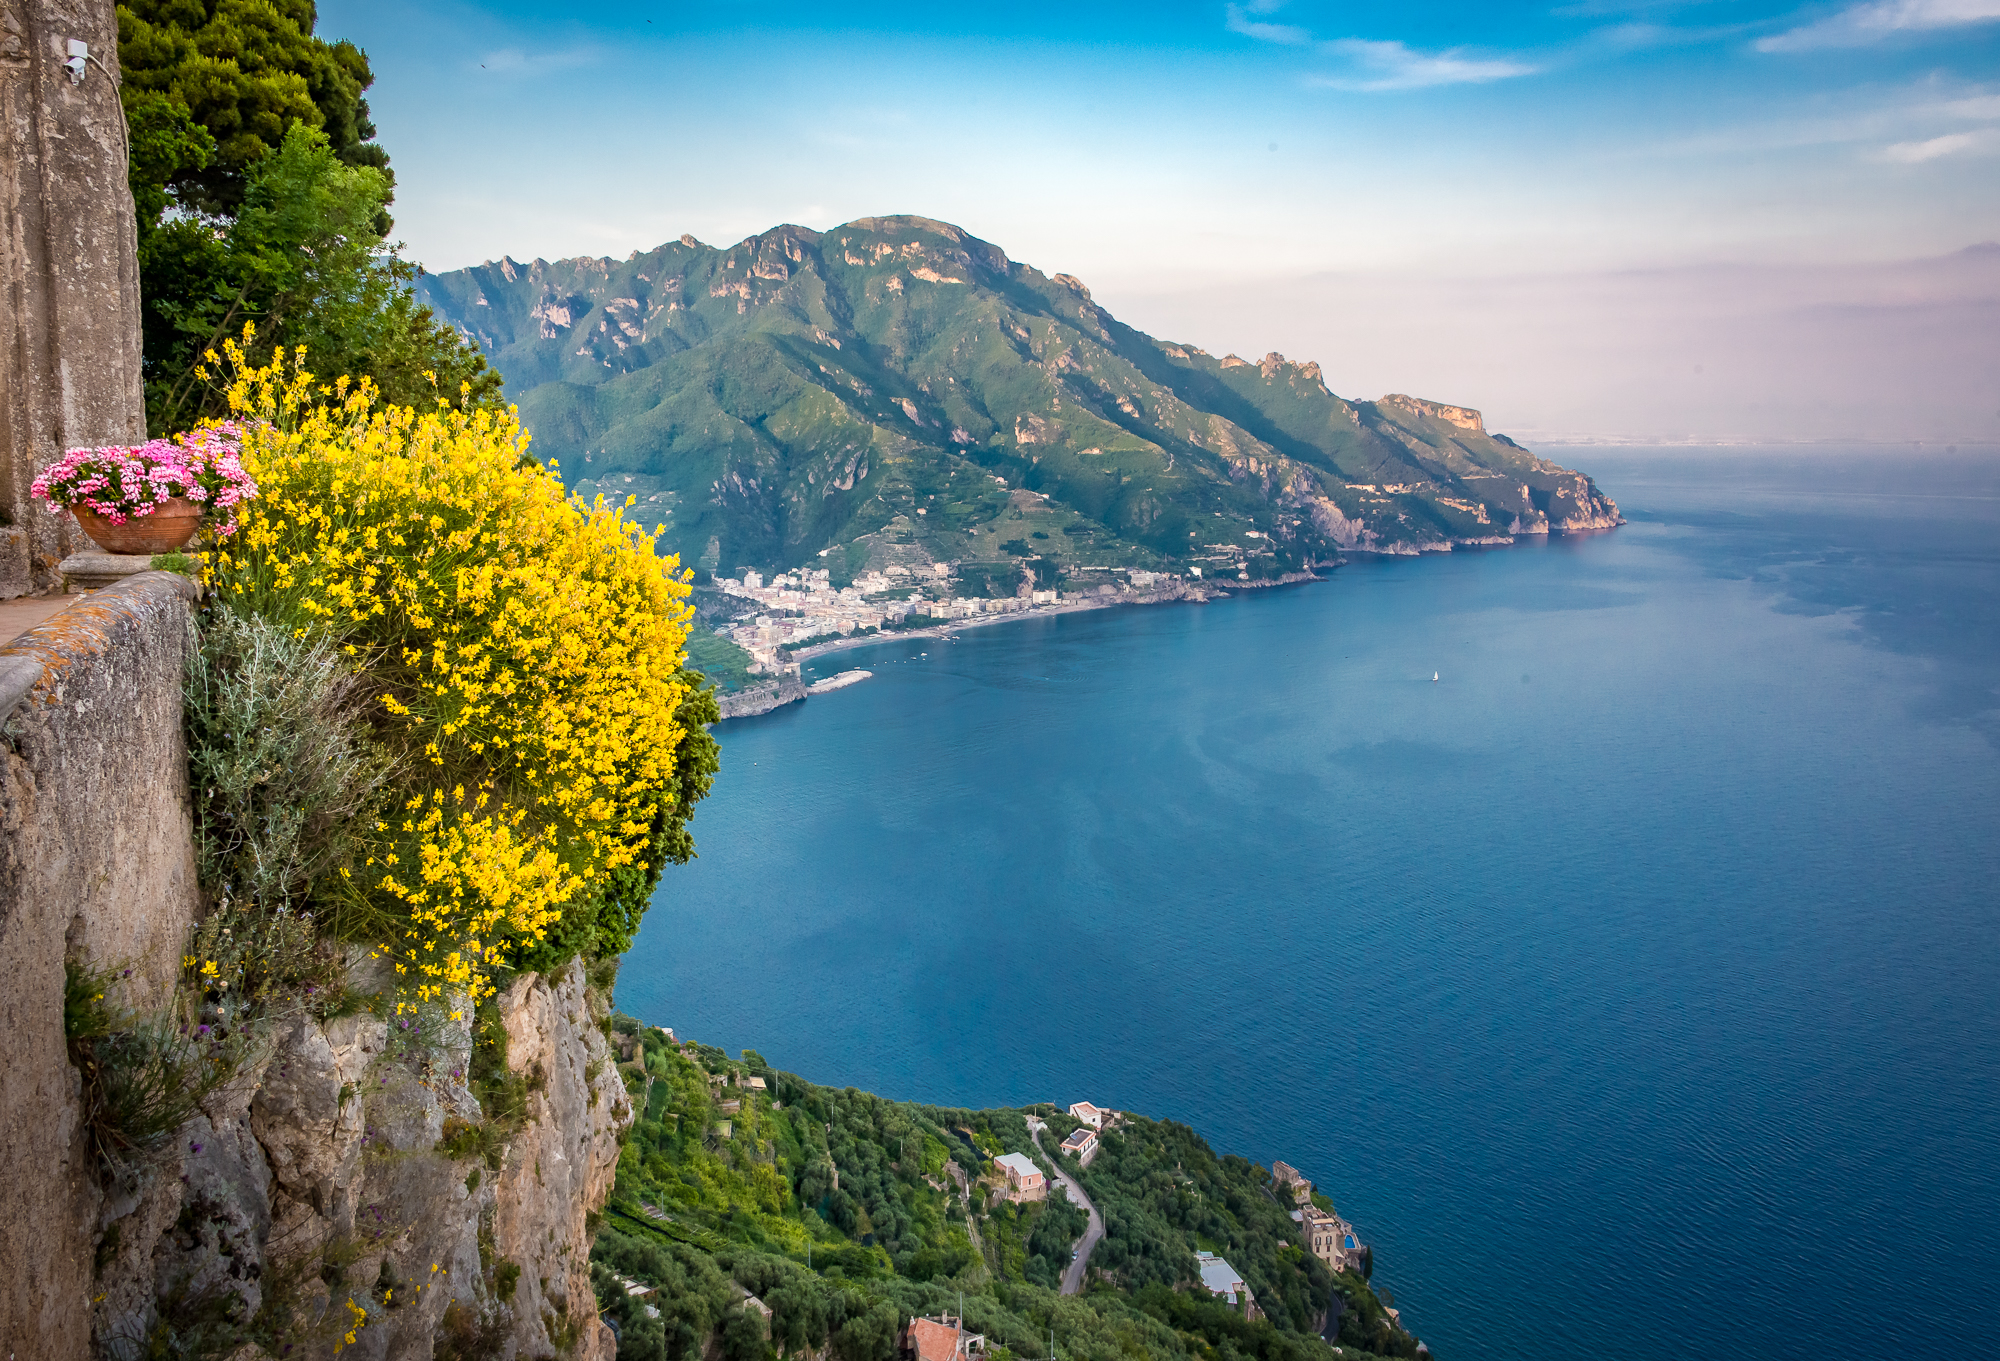 View of the Amalfi Coast looking to the east